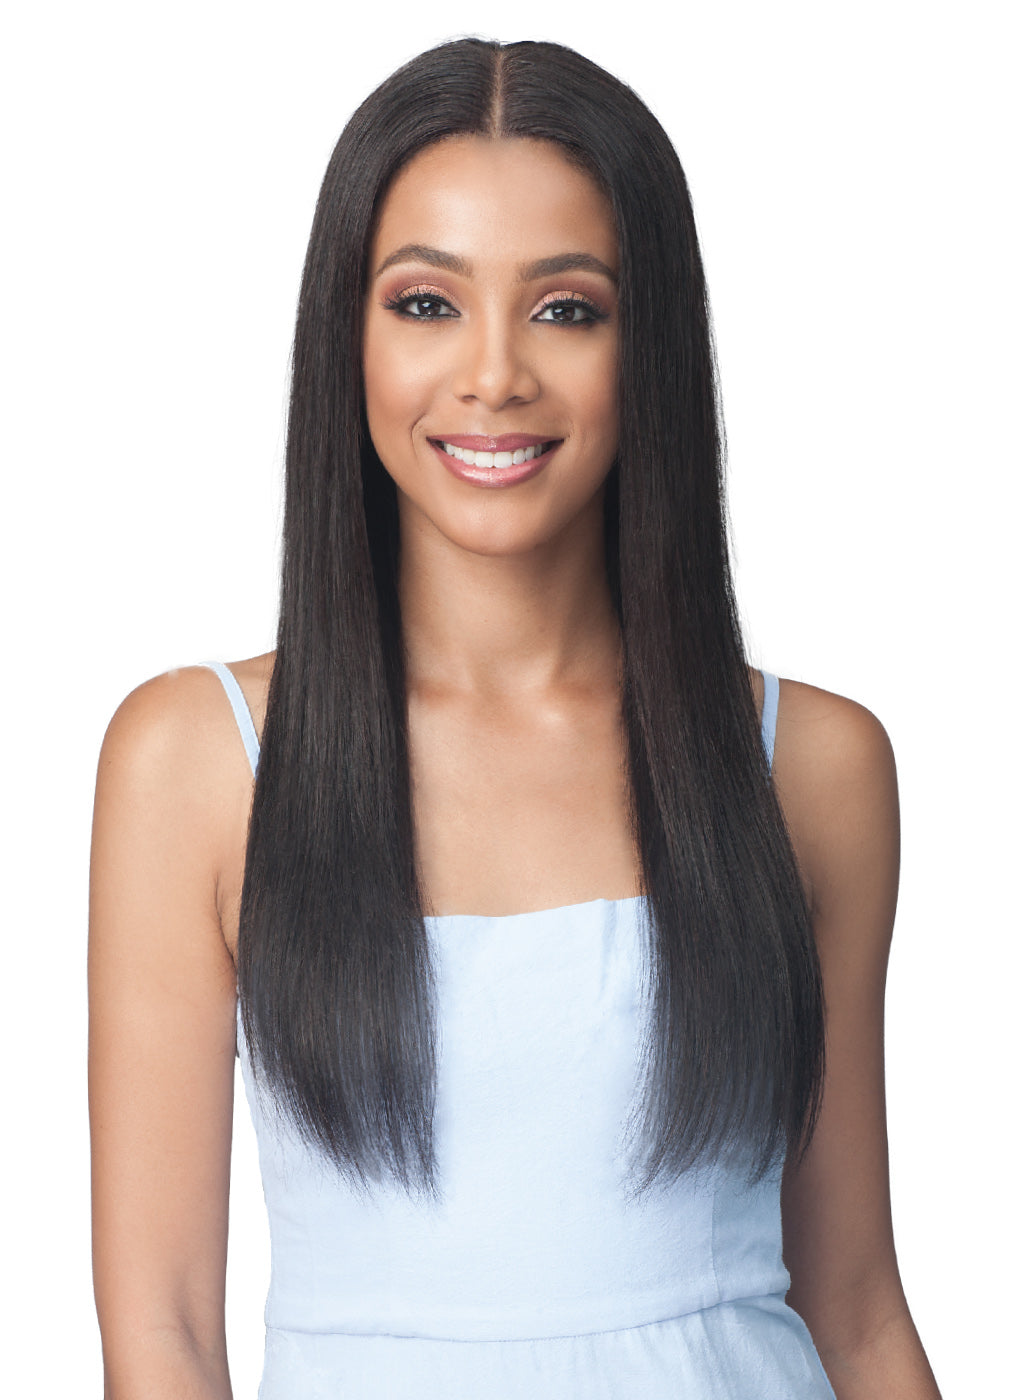 Bobbi Boss Virgin Remy Human Hair 13x4 Lace Front Wig MHLF508 NATURAL STRAIGHT 24